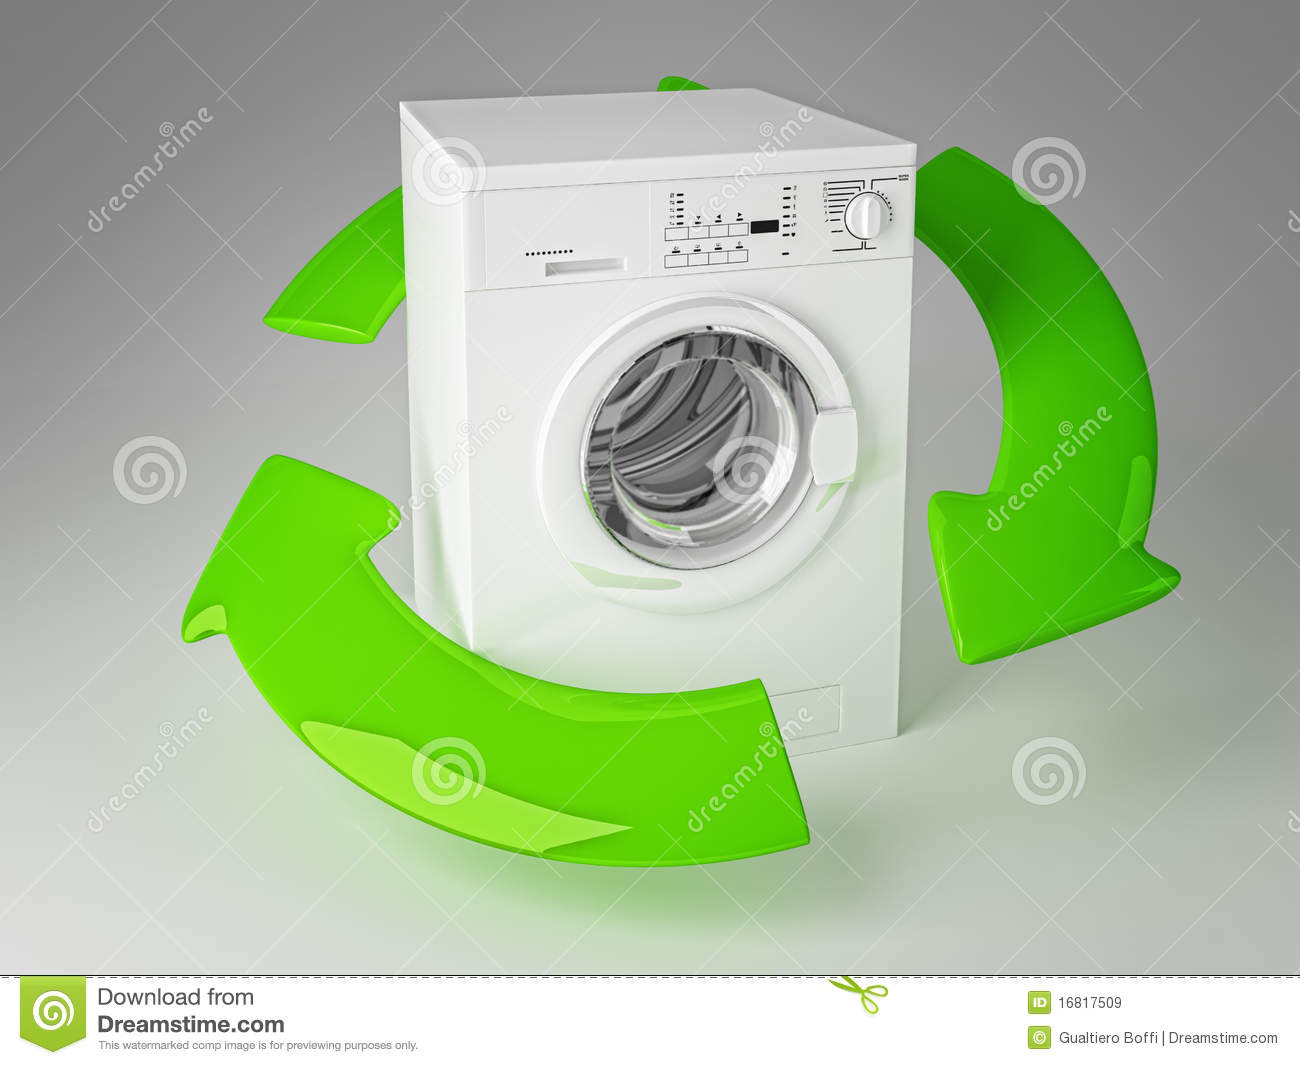 how to choose an environmentally friendly washing machine